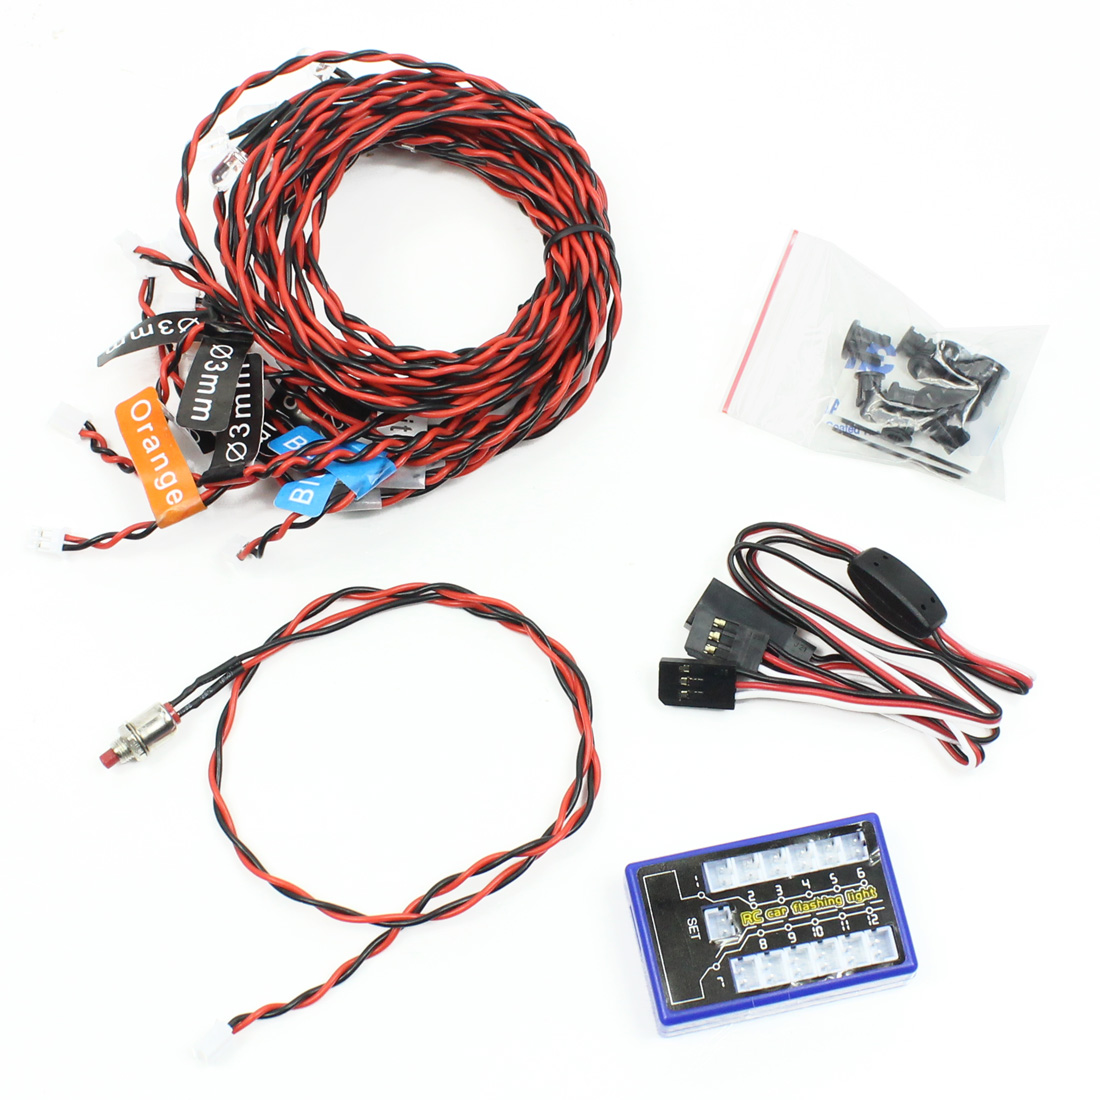 F04622 Ultra Bright 12 <font><b>LED</b></font> Multi-color Flashing <font><b>Light</b></font> System for DIY <font><b>RC</b></font> Car Helicopters <font><b>Plane</b></font> Quadcopter image